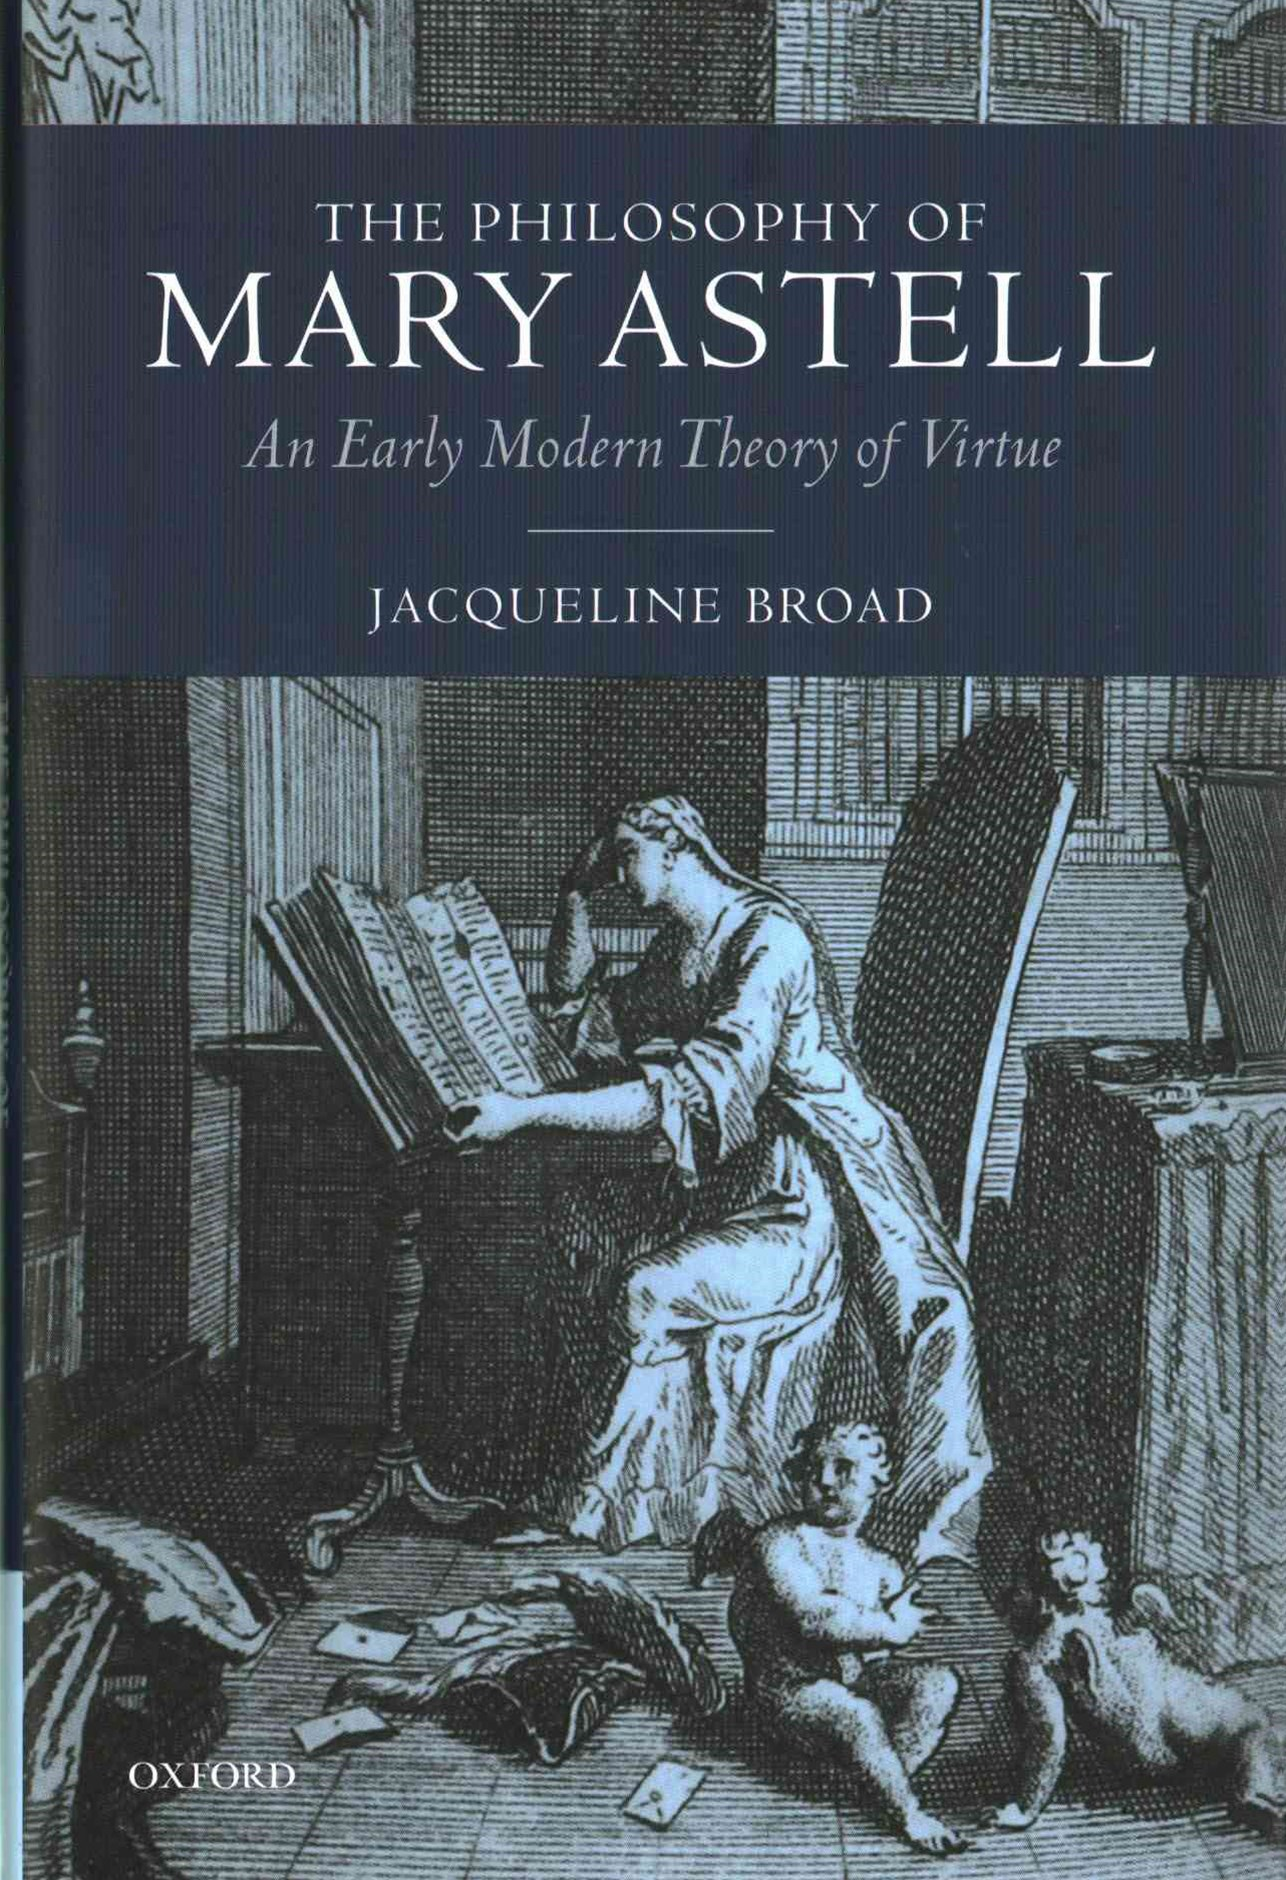 The Philosophy of Mary Astell